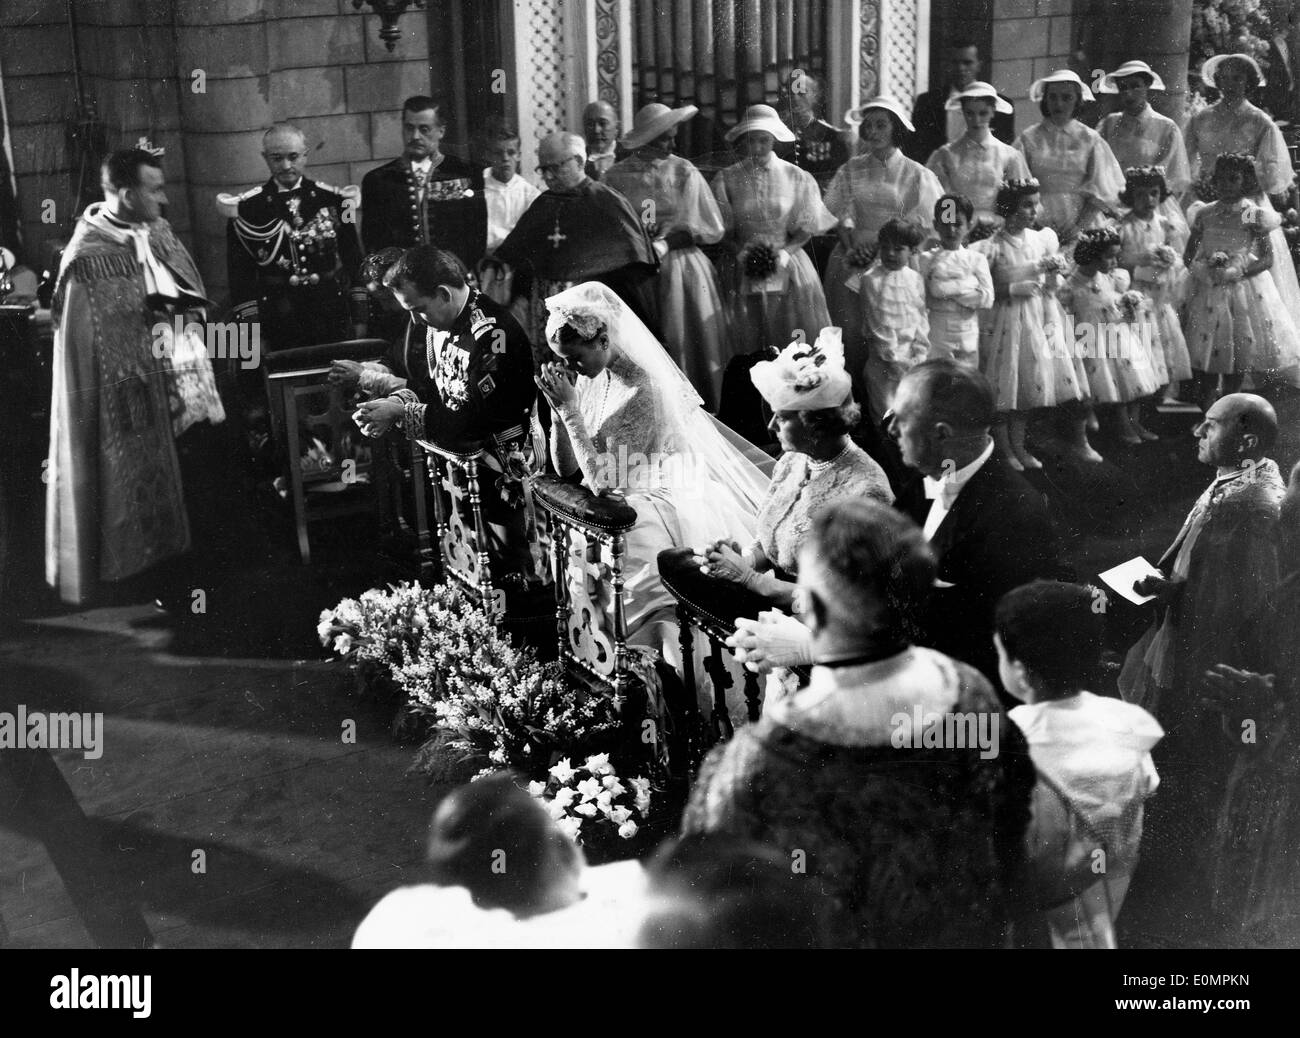 Prince Rainier and his wife Grace Kelly's wedding ceremony - Stock Image